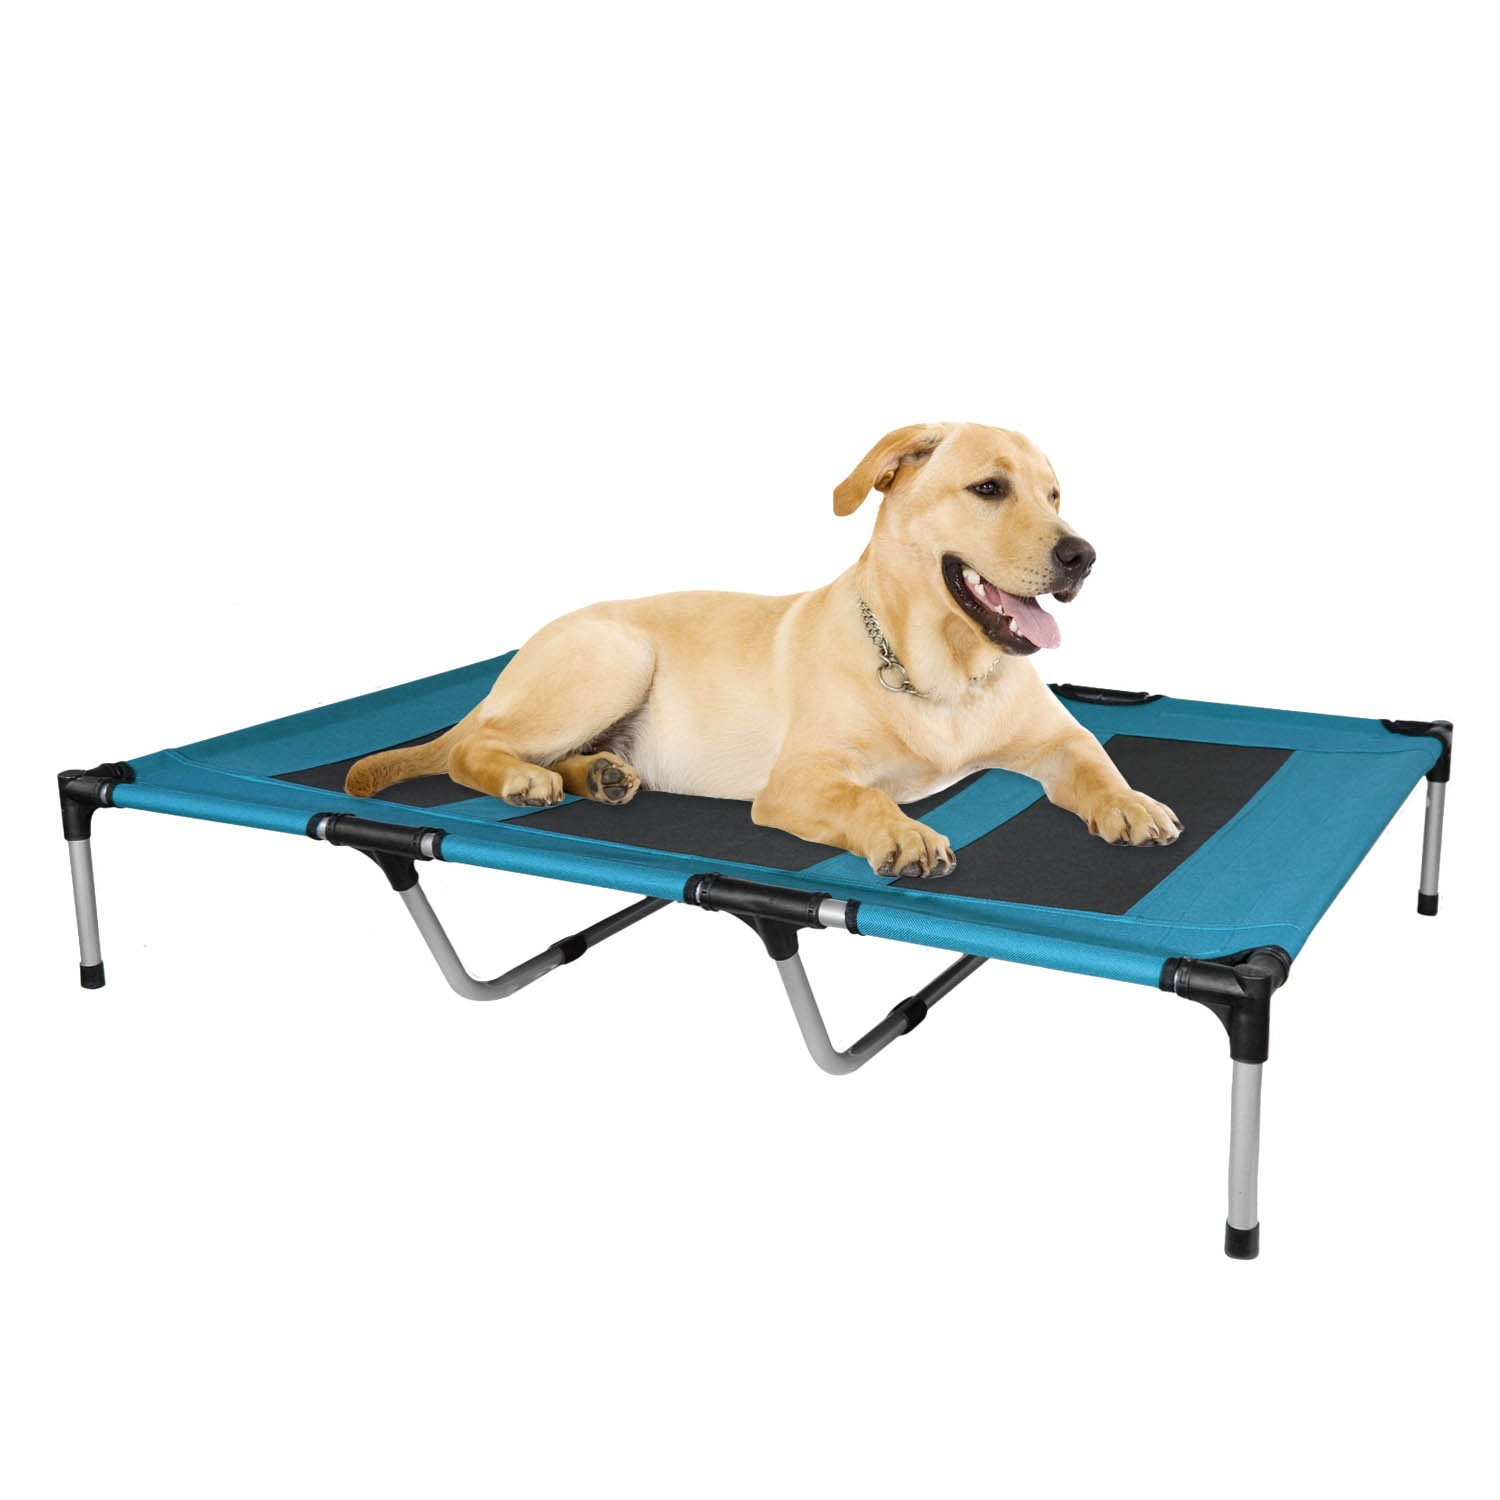 Kopeks - Elevated Indoor Outdoor Portable Bed - Extra Large Size Blue Color